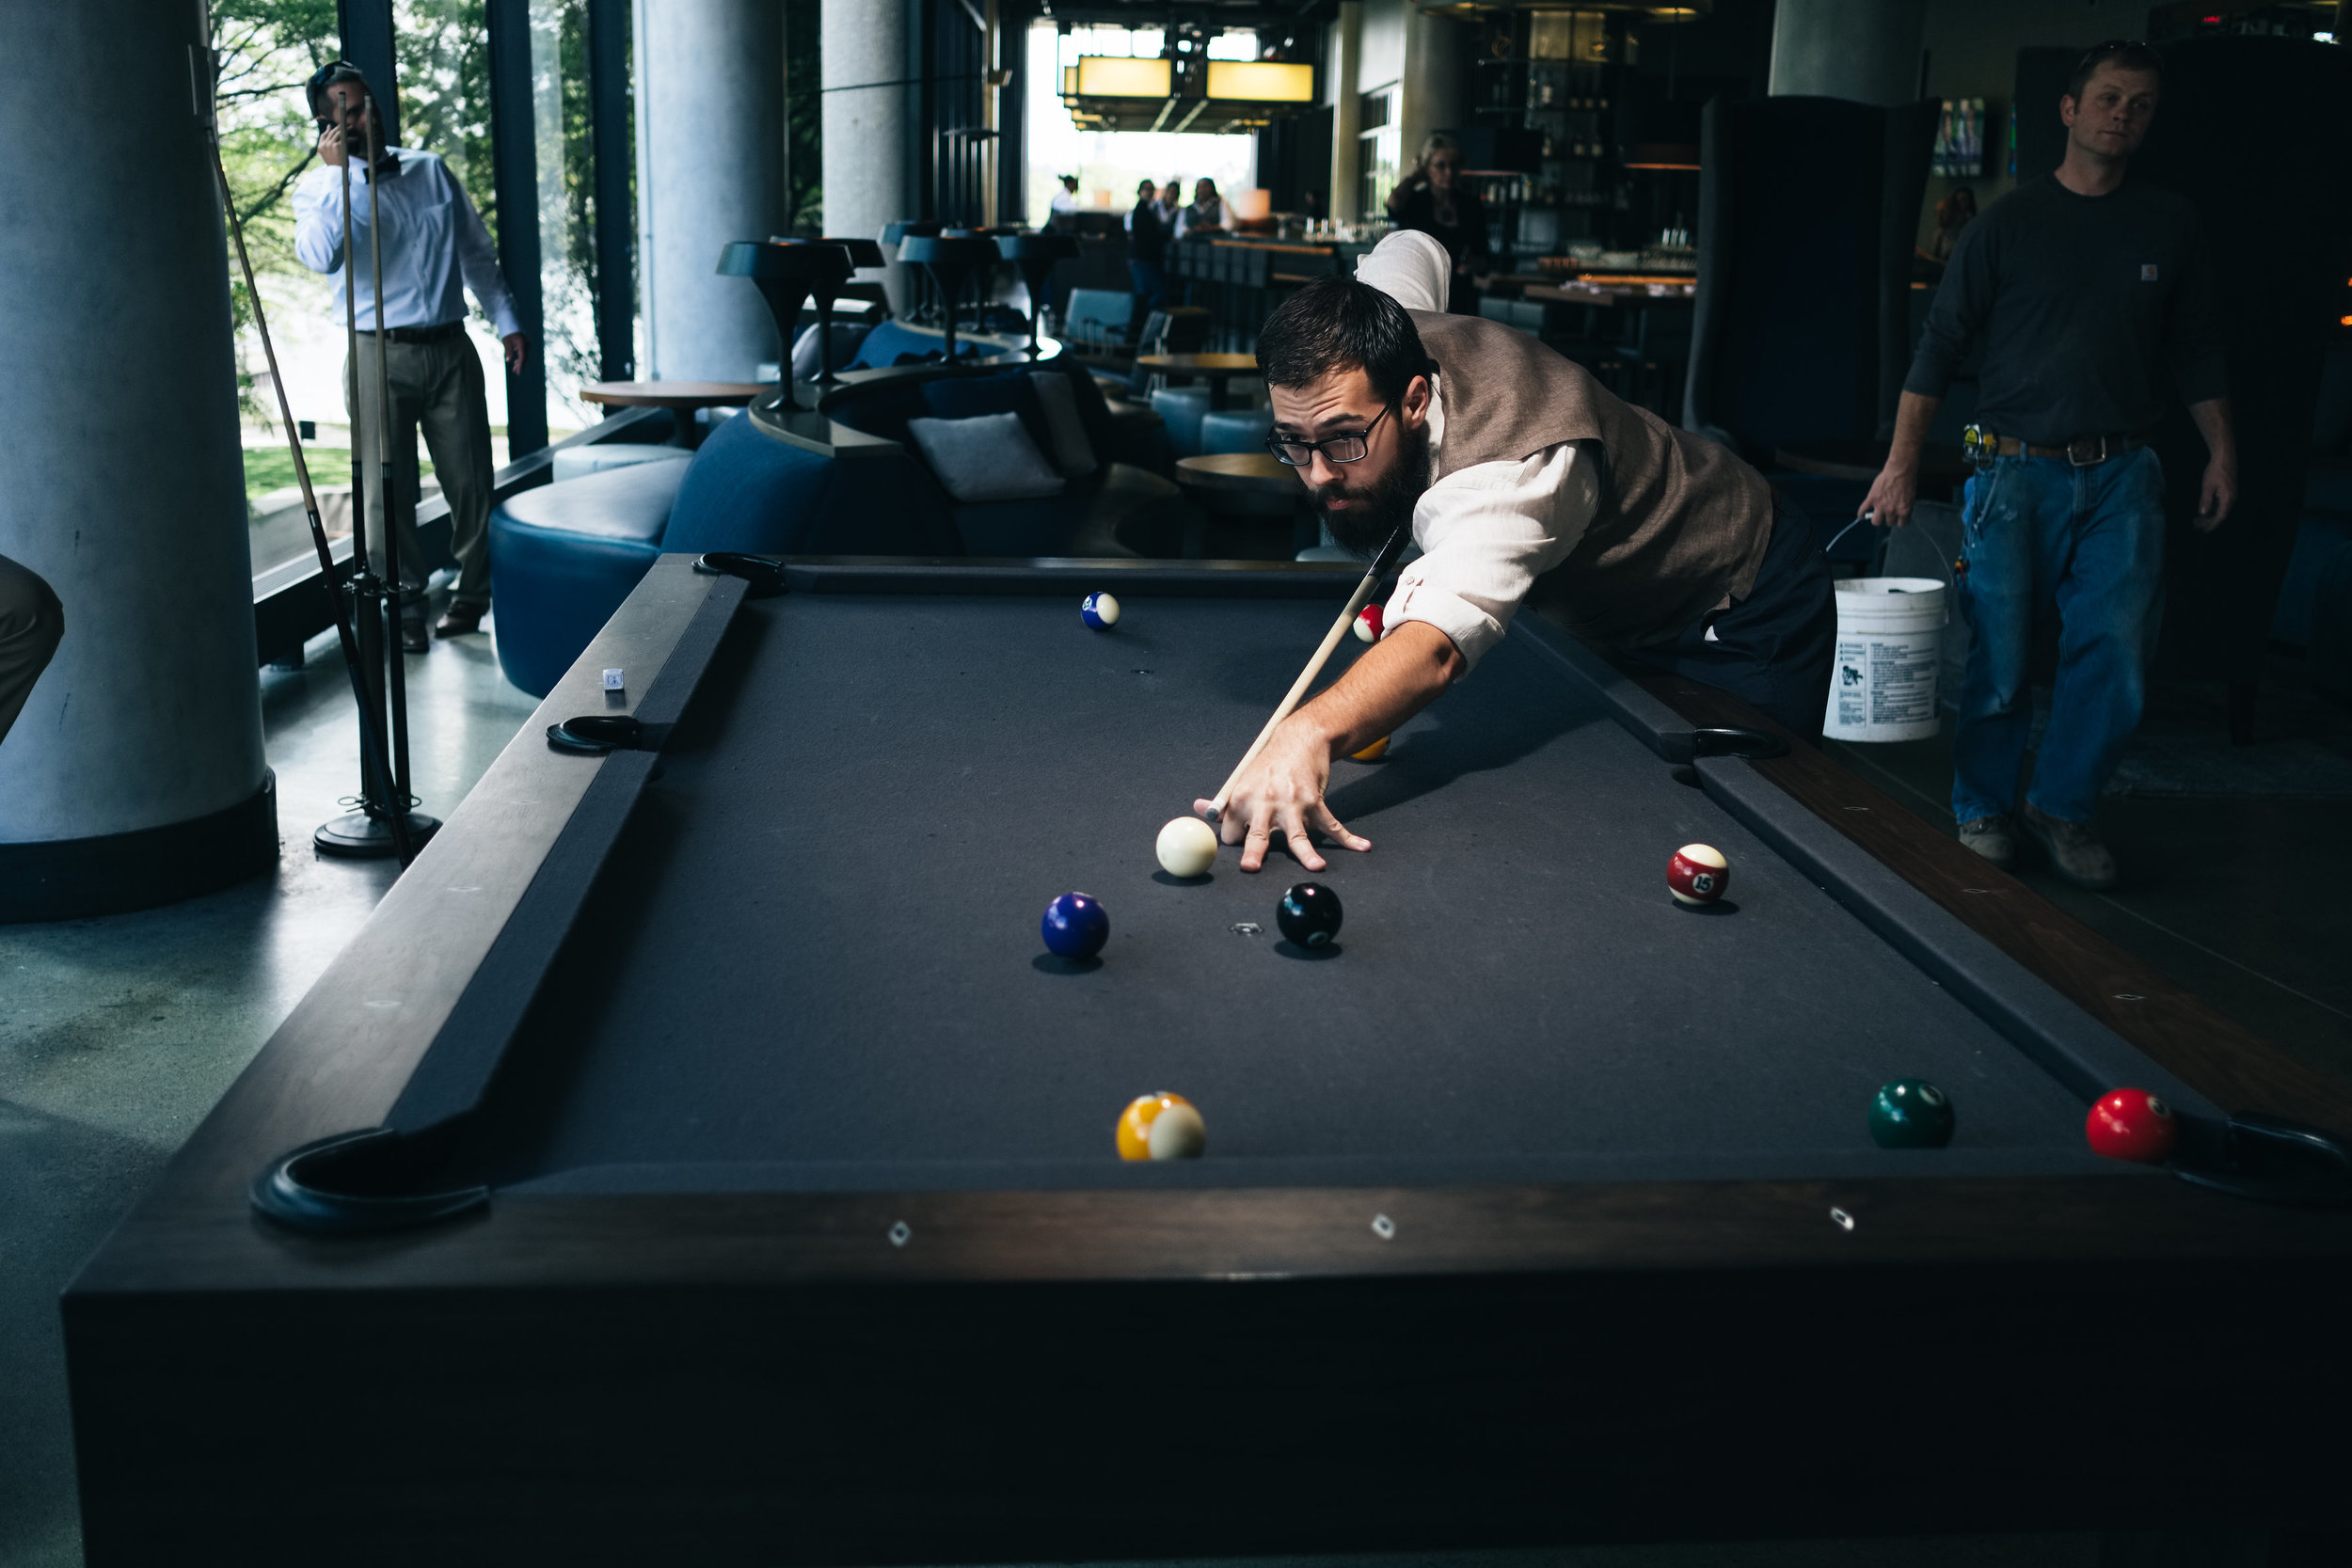 Groom Plays Pool for an Engagement Session Photograph